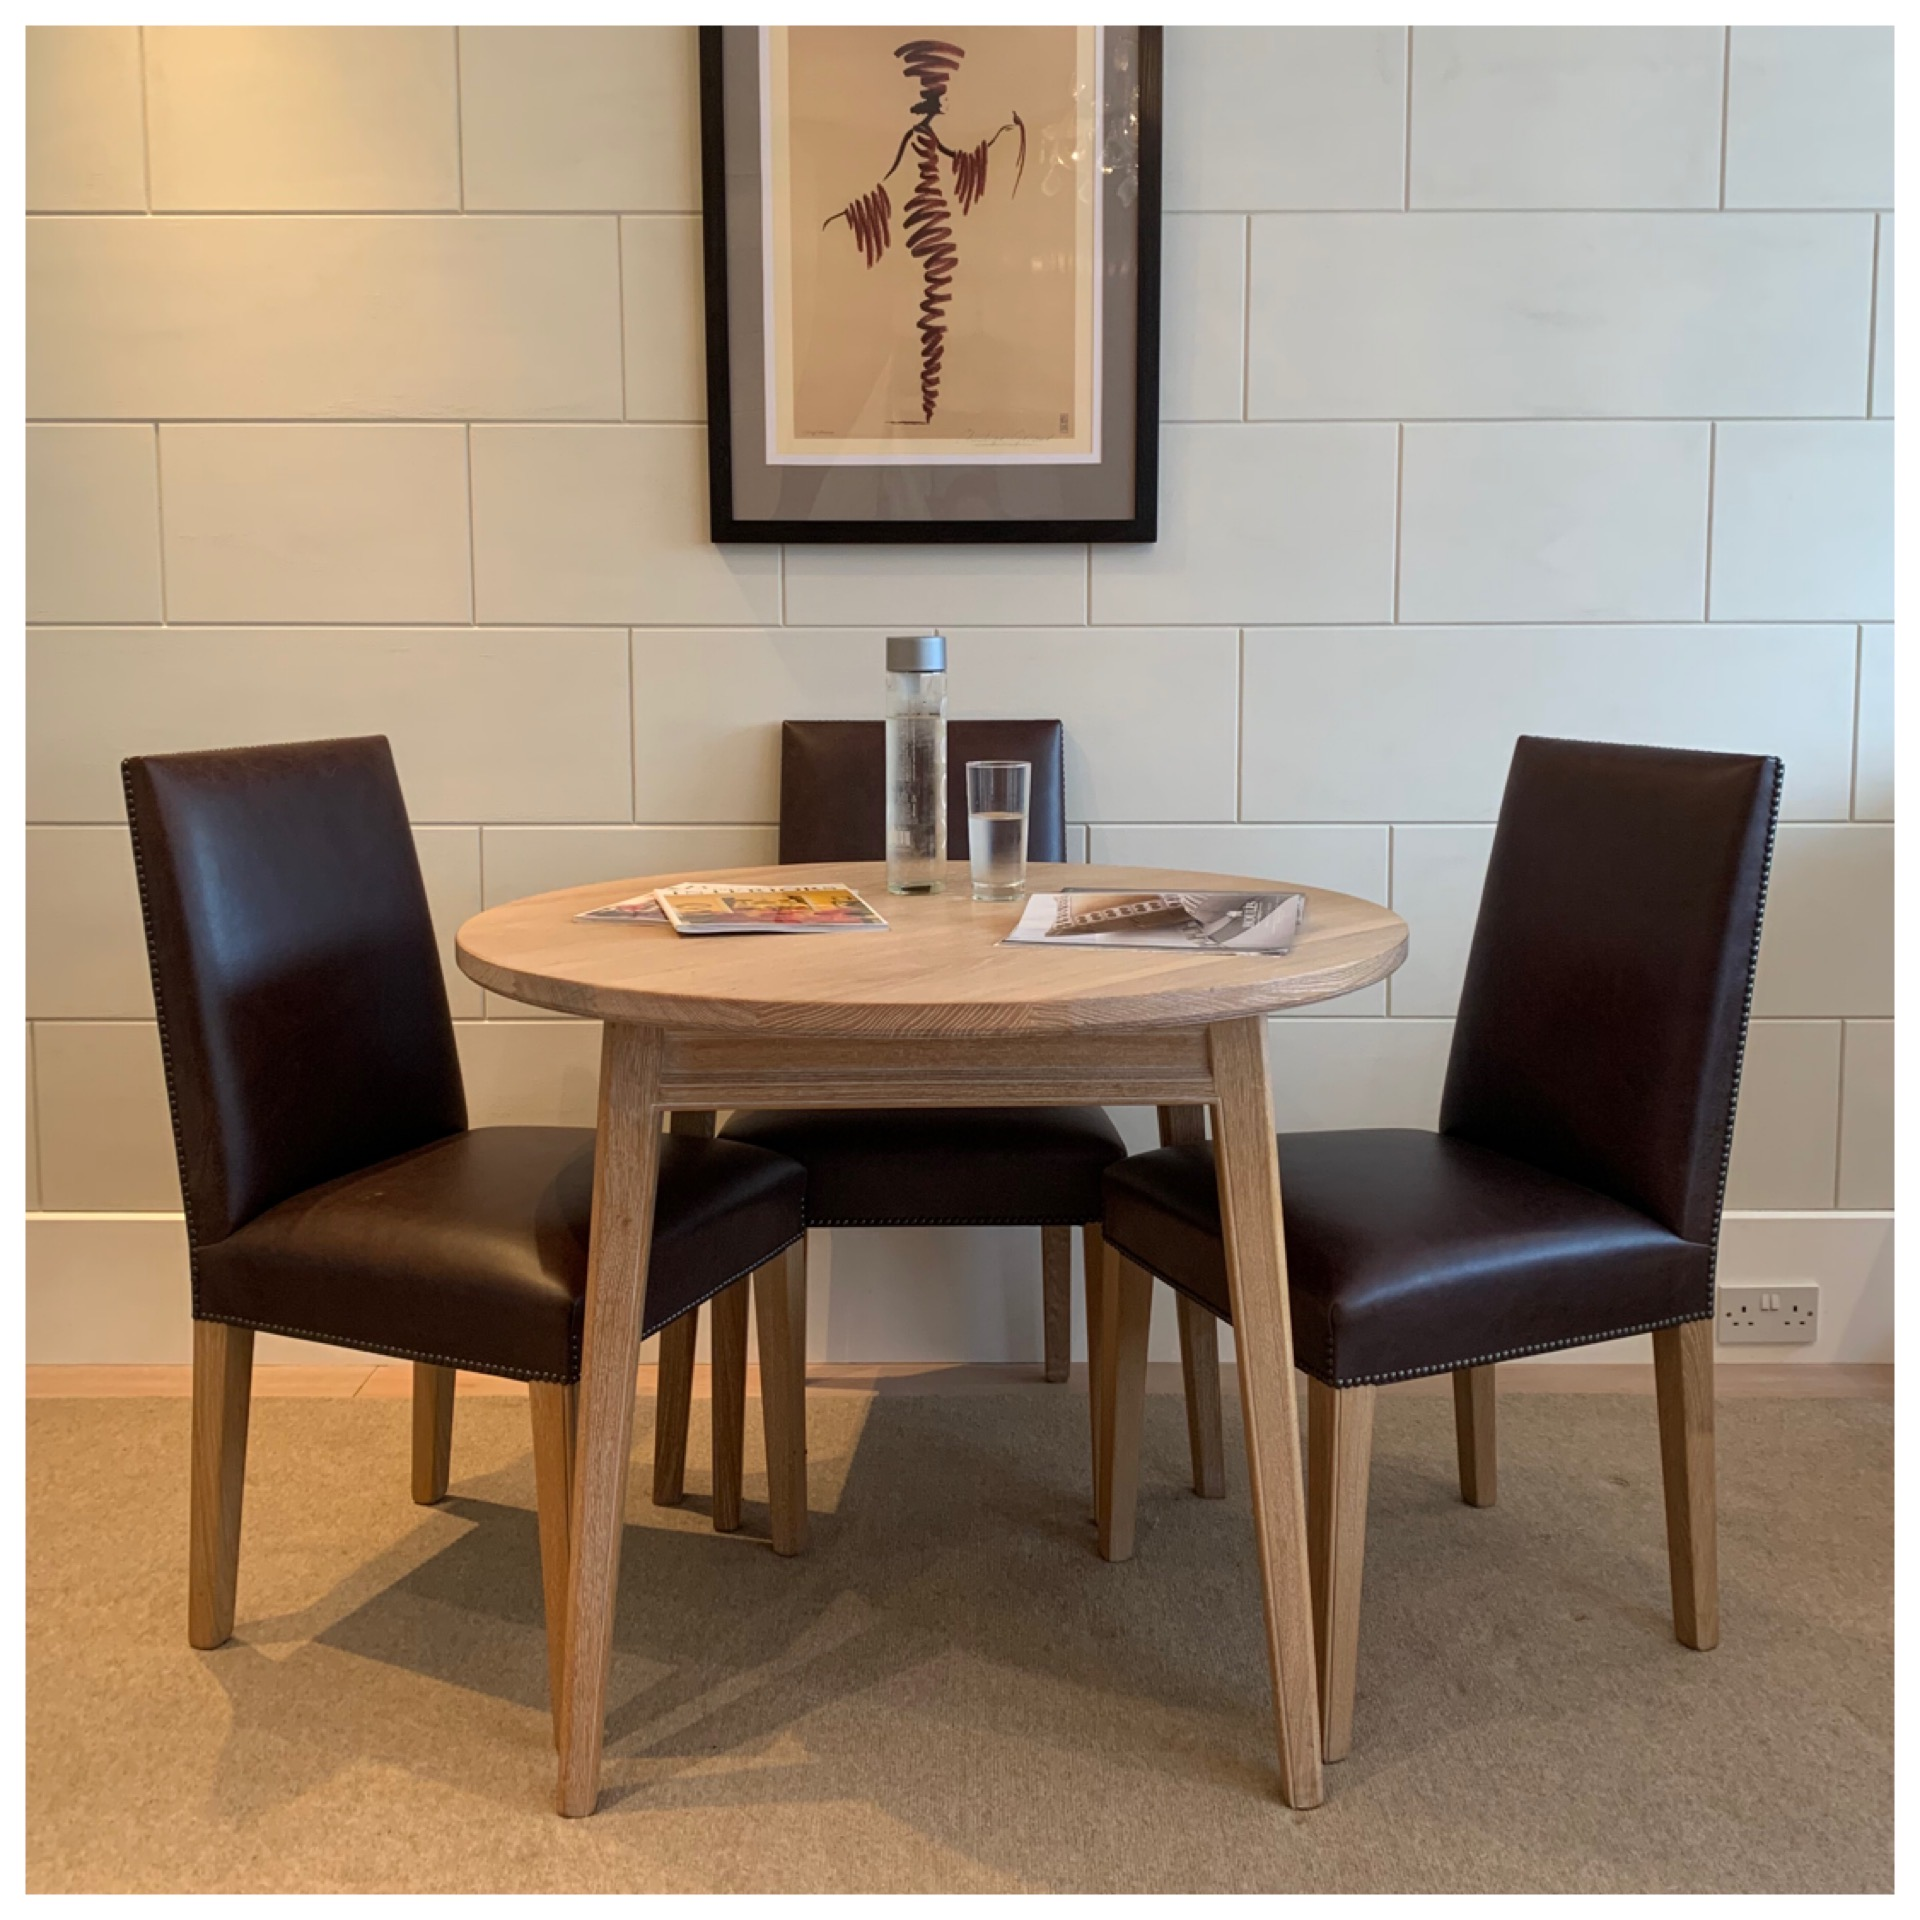 Sale Price: Table £480 Chairs £320 (each)